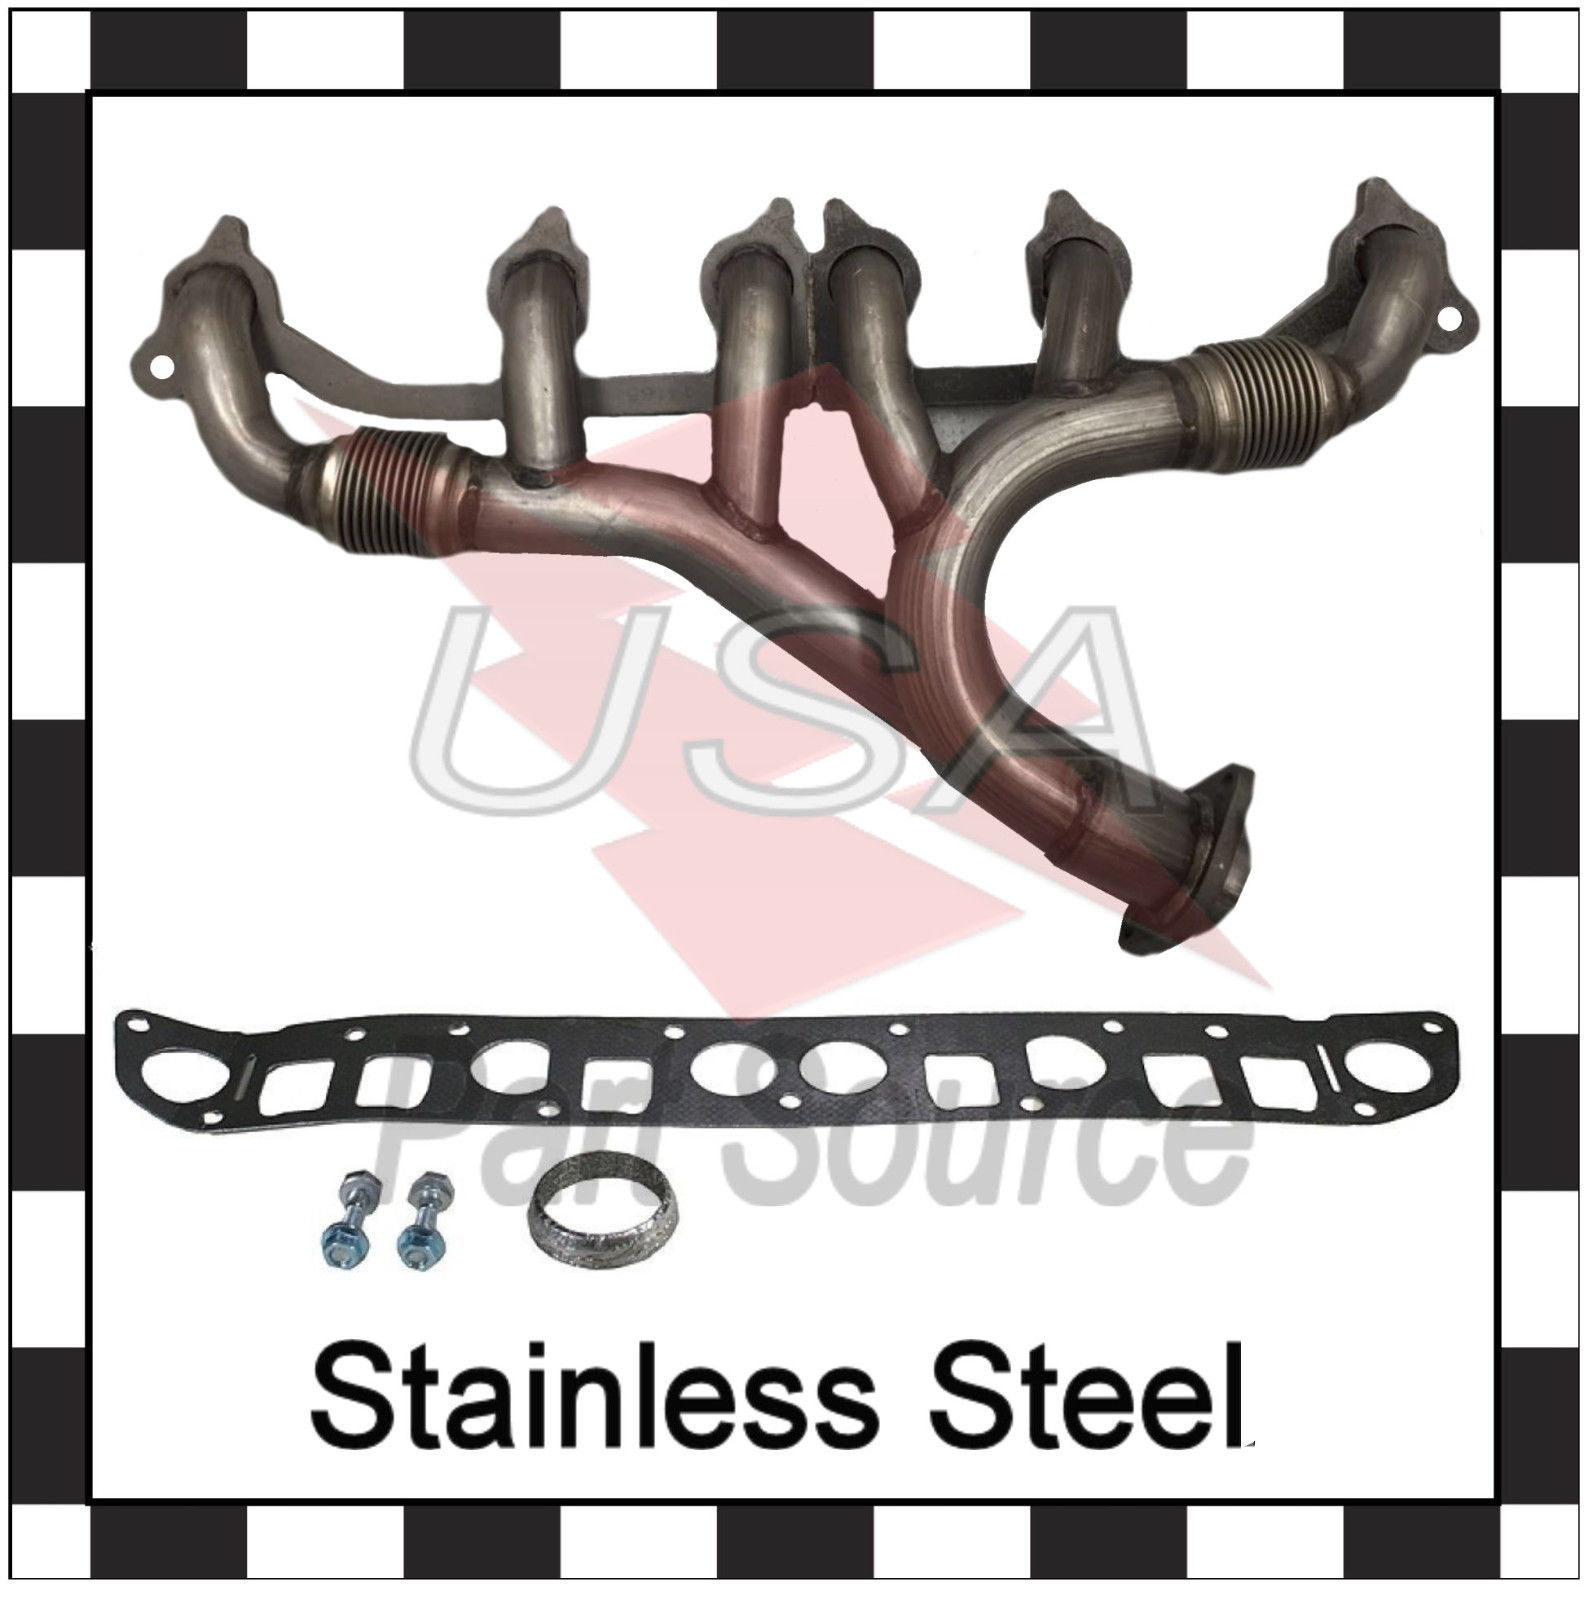 Stainless Steel For 1999 Jeep Wrangler L6 4.0L Exhaust Manifold /& Gasket Kit